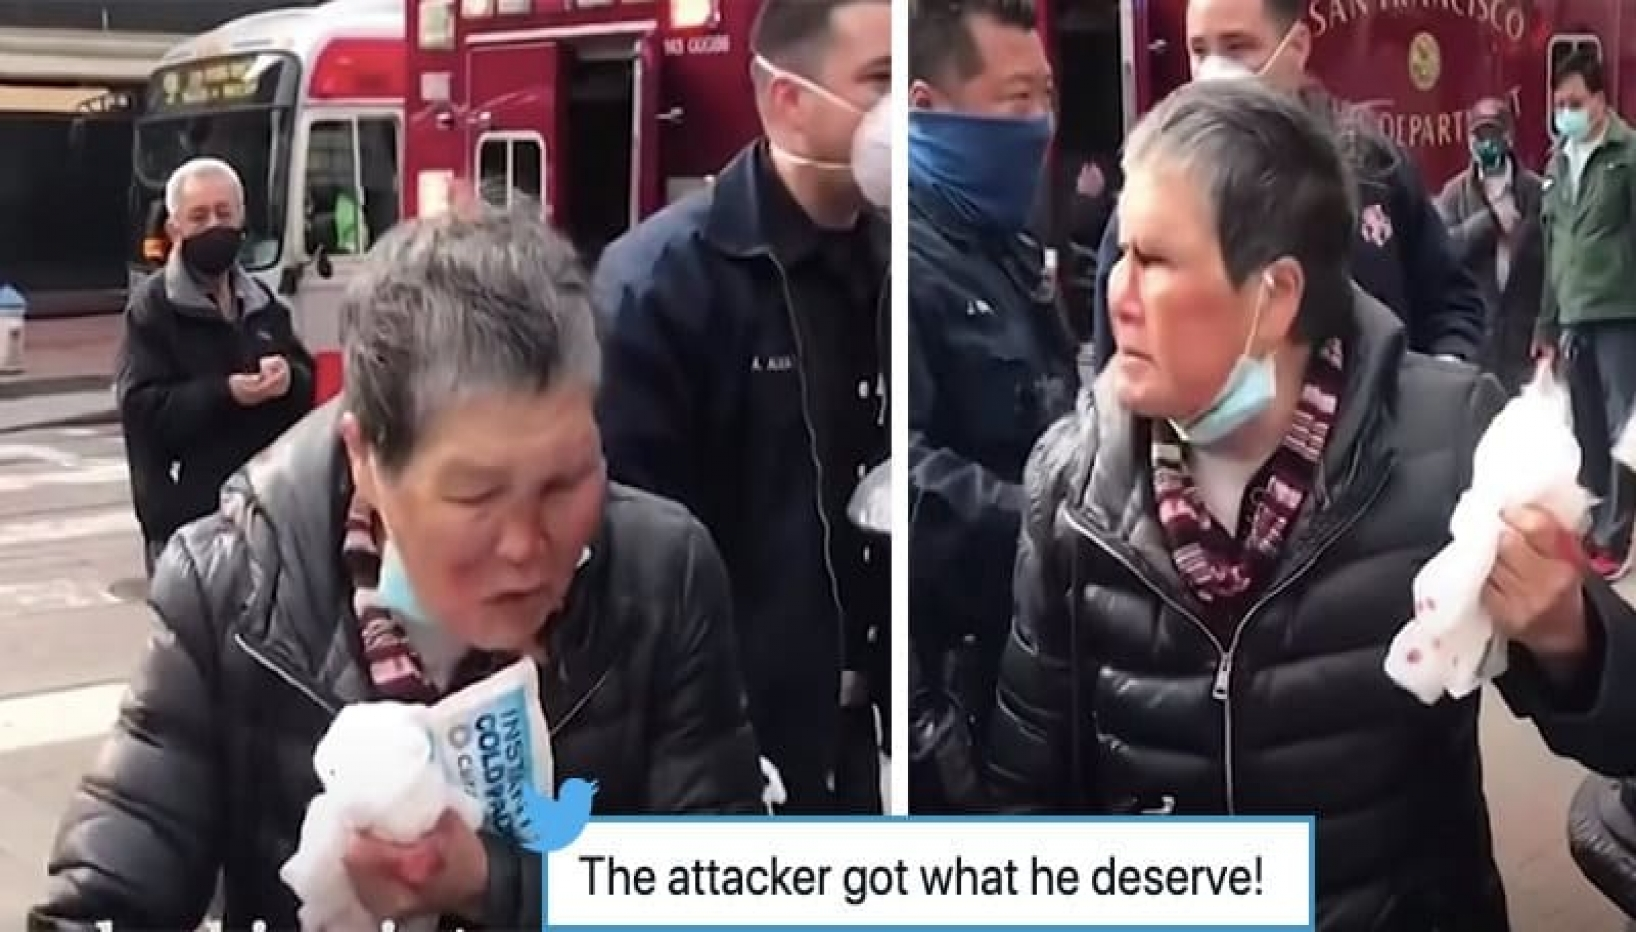 Bleeding man in stretcher angry woman picture side by side